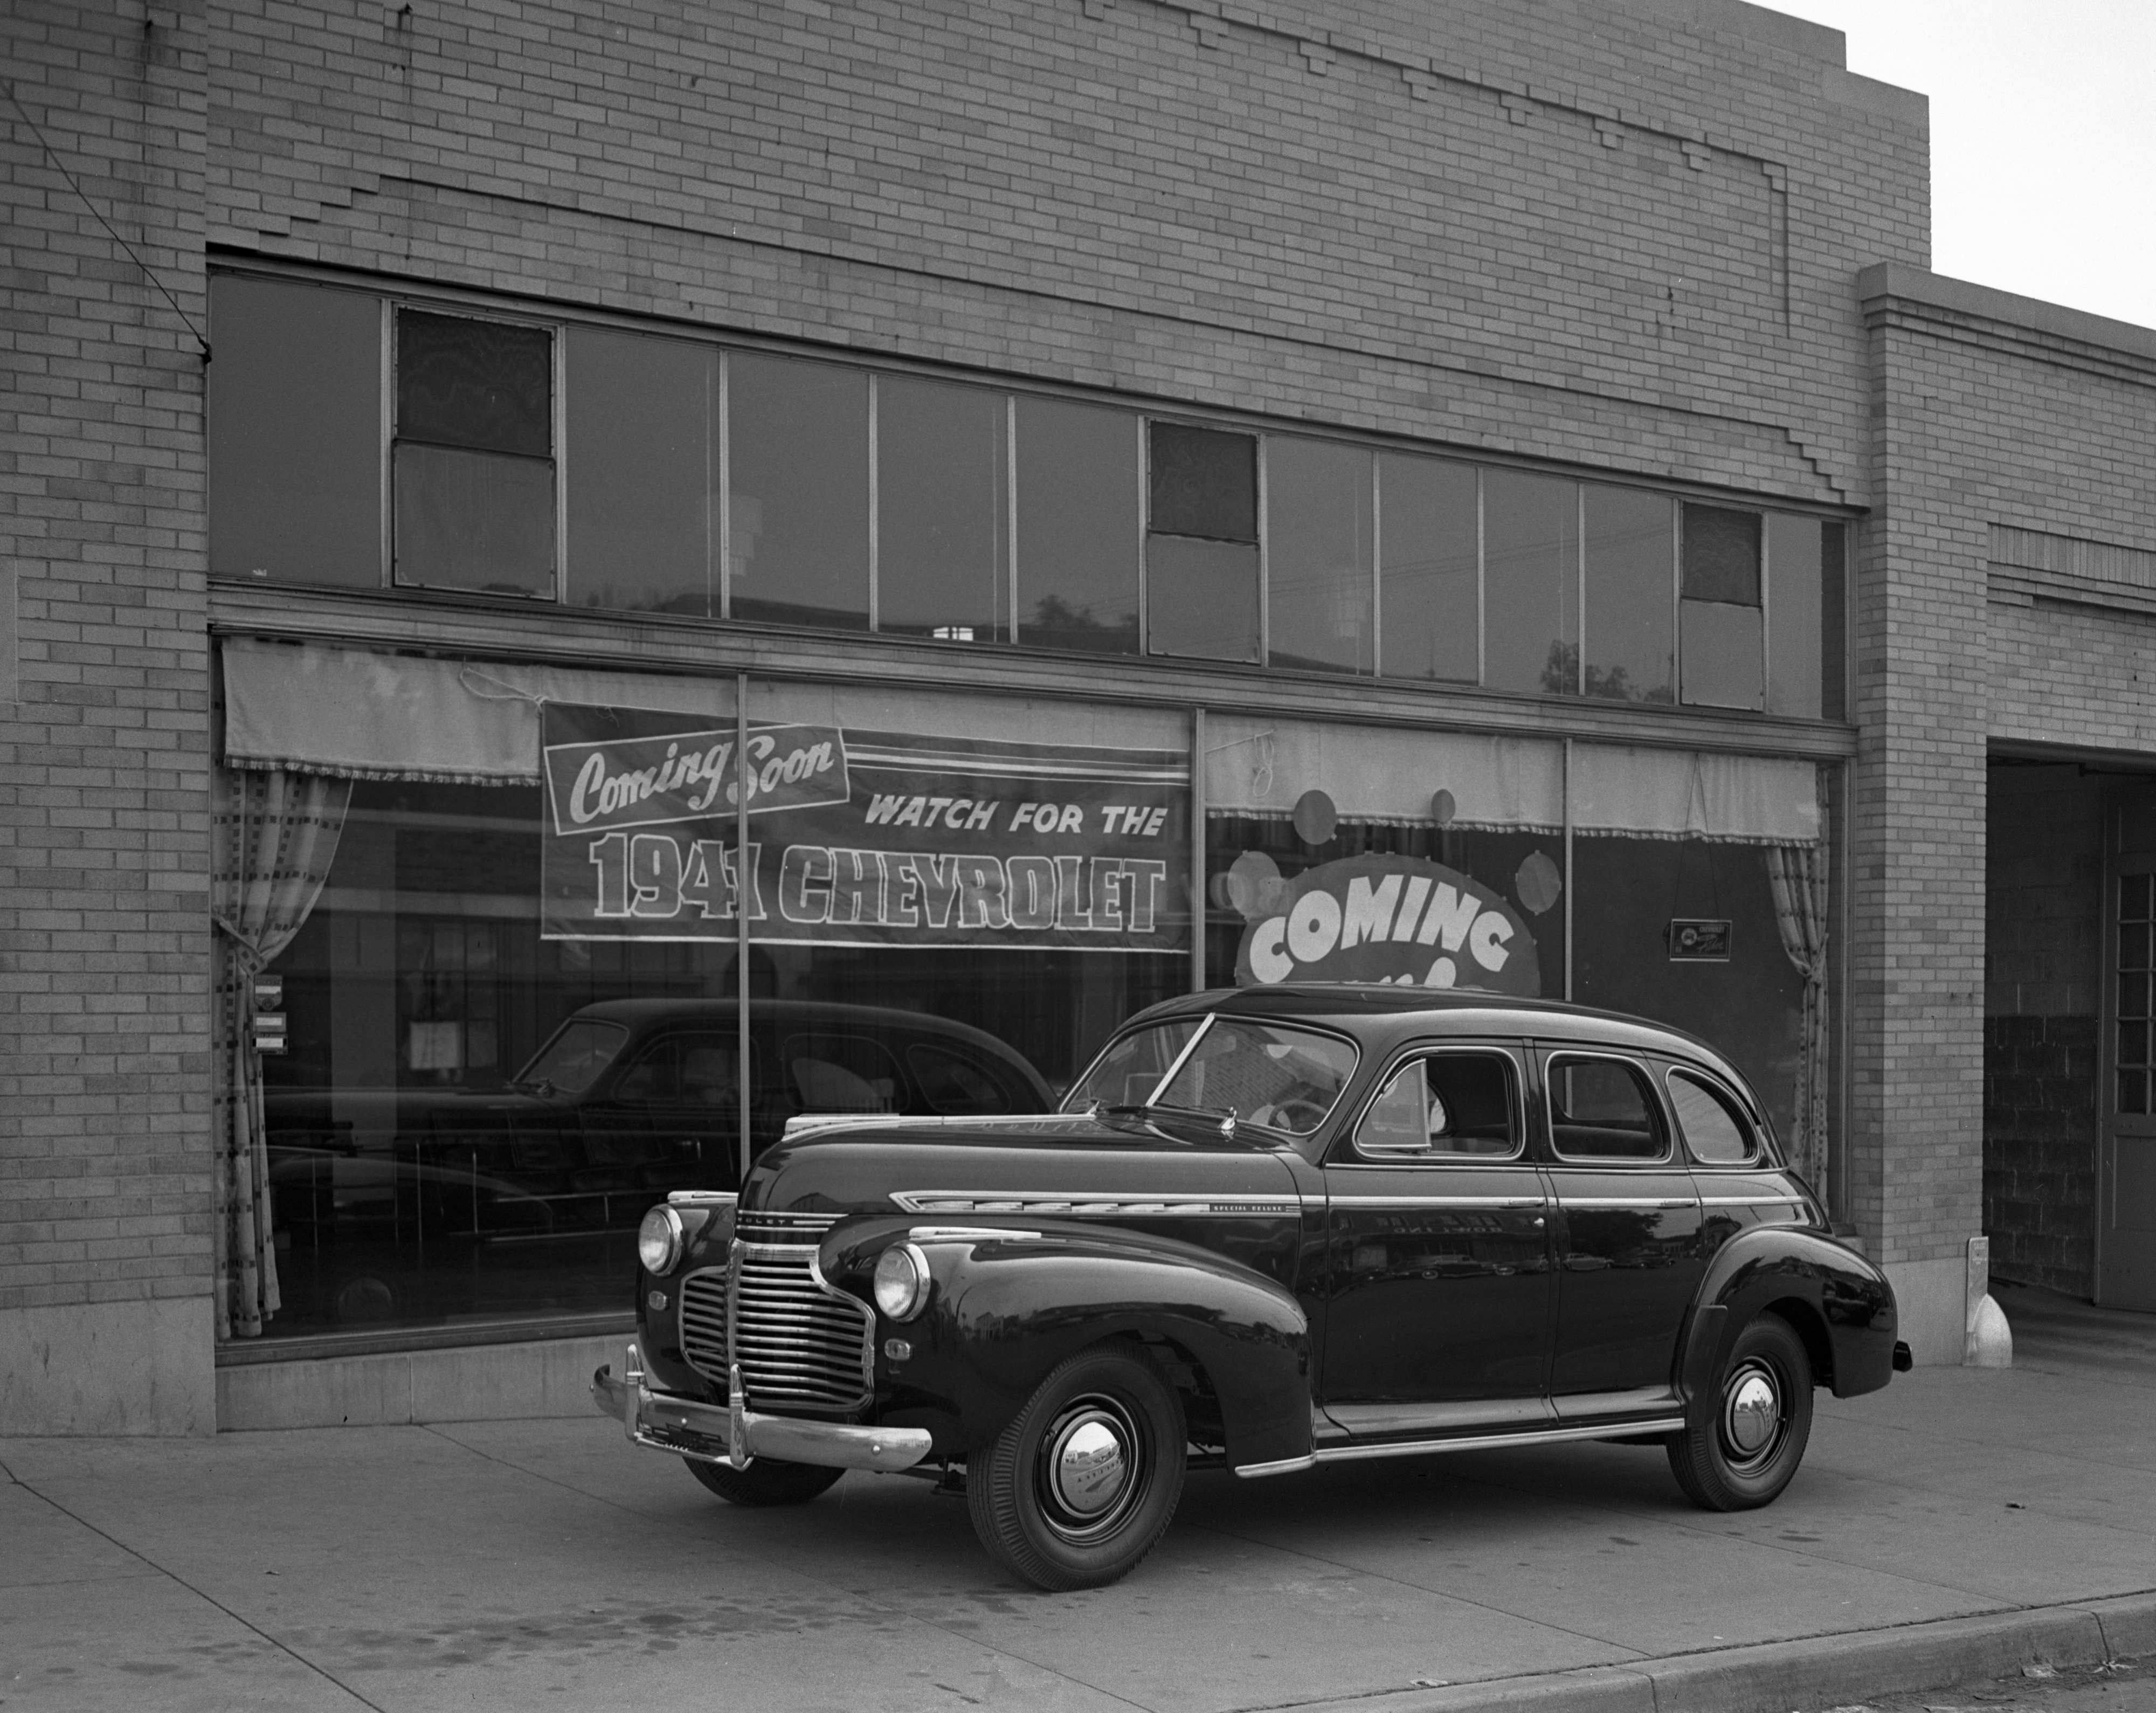 1941 Chevrolet at Huron Motor Sales, September 1940 image